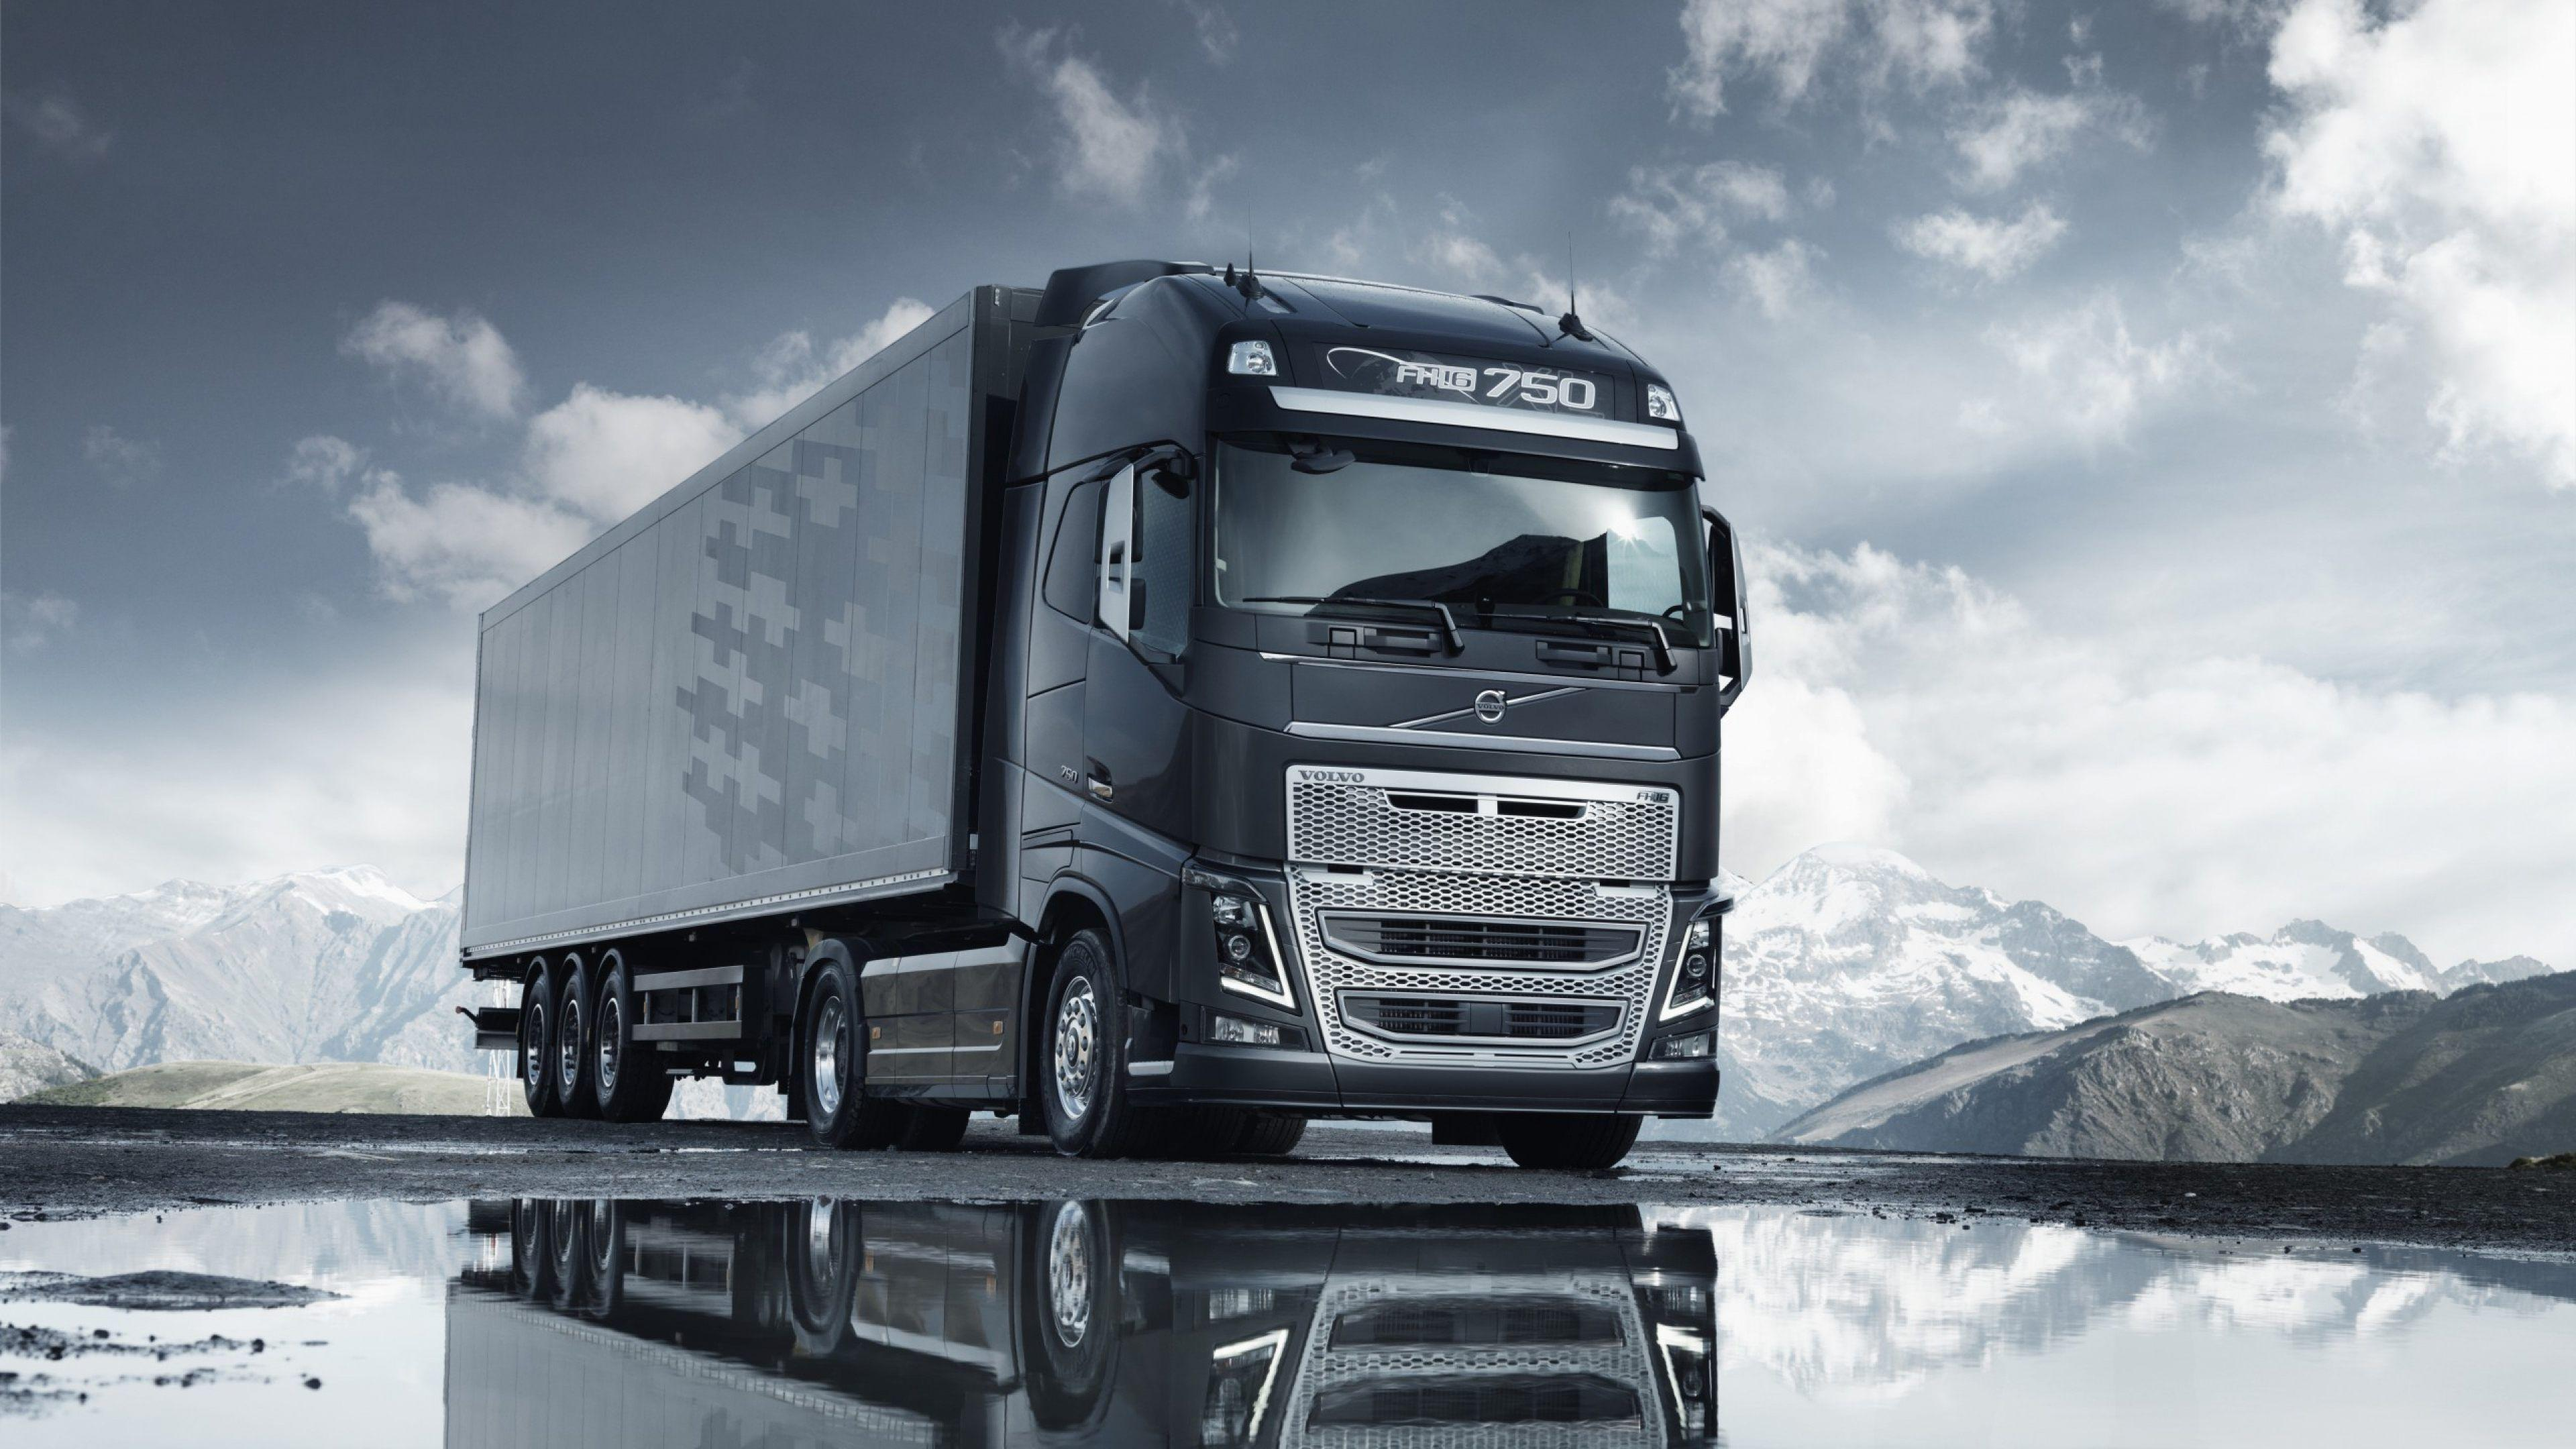 Volvo FH16 750 Truck Wallpaper Download Of 4K Ultra HD